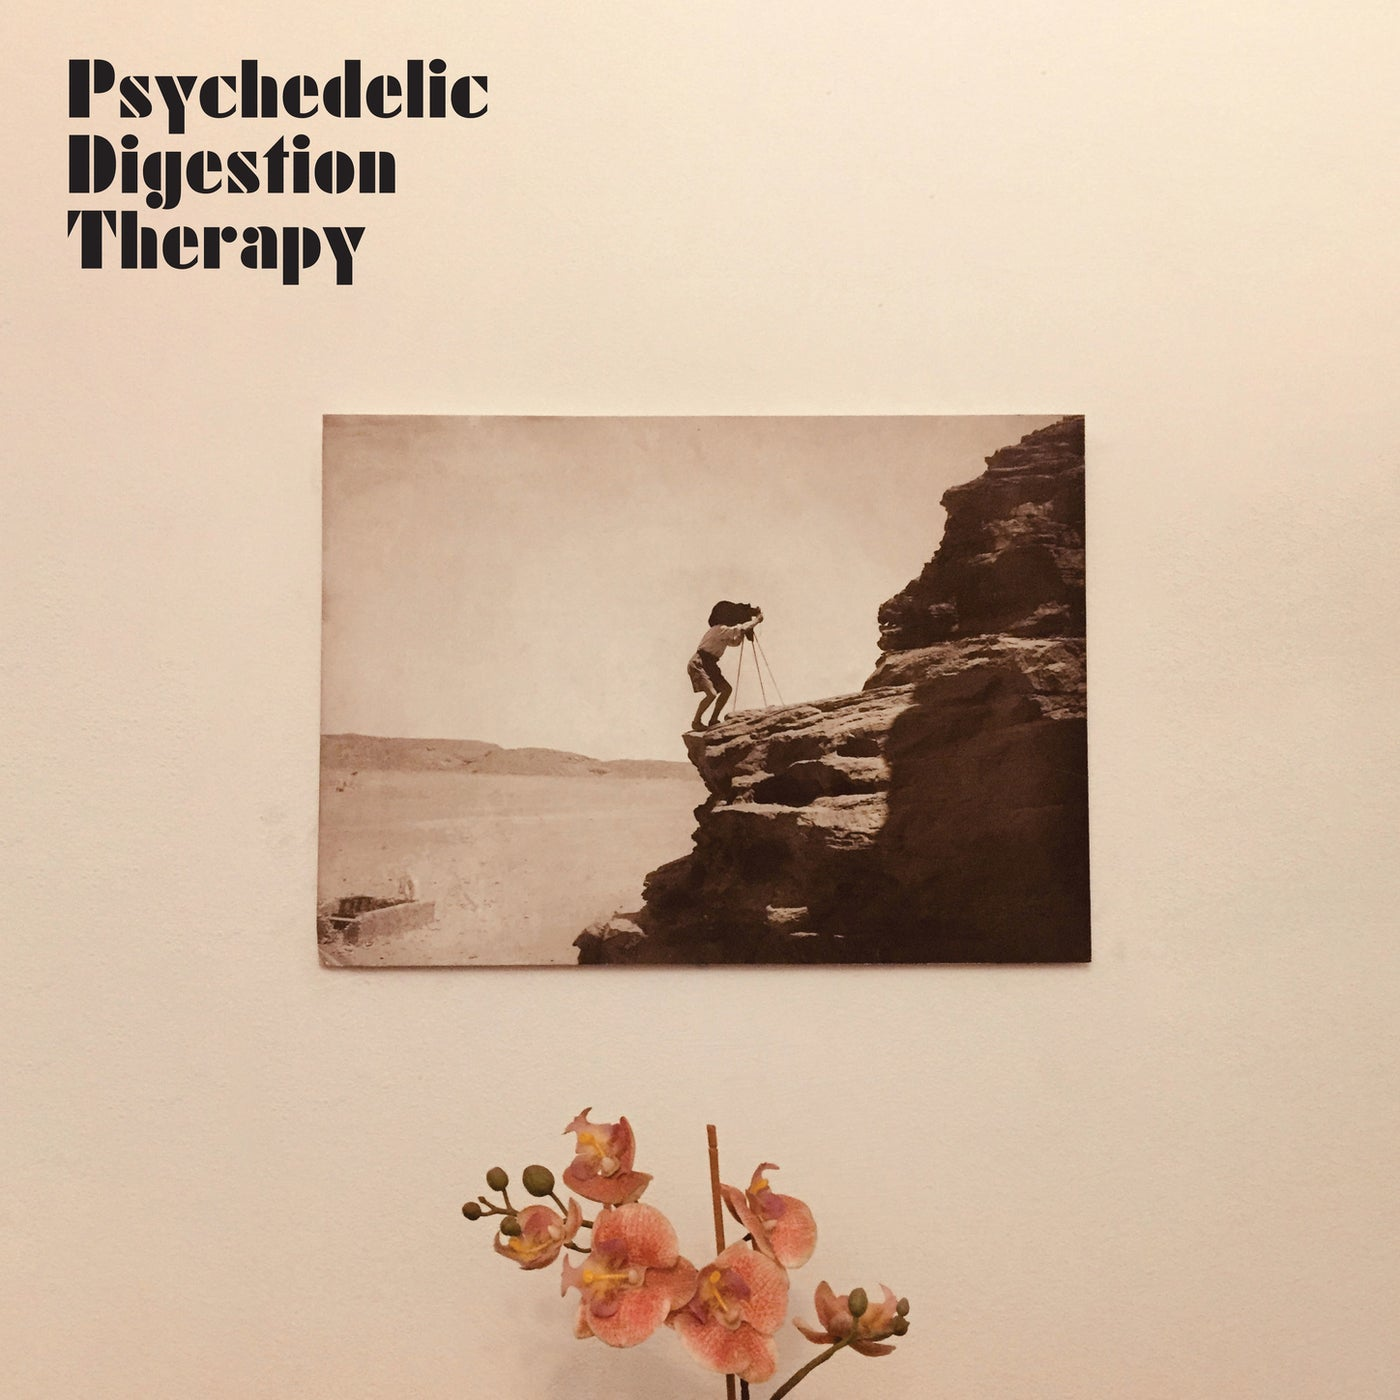 Psychedelic Digestion Therapy - Psychedelic Digestion Therapy (2021)